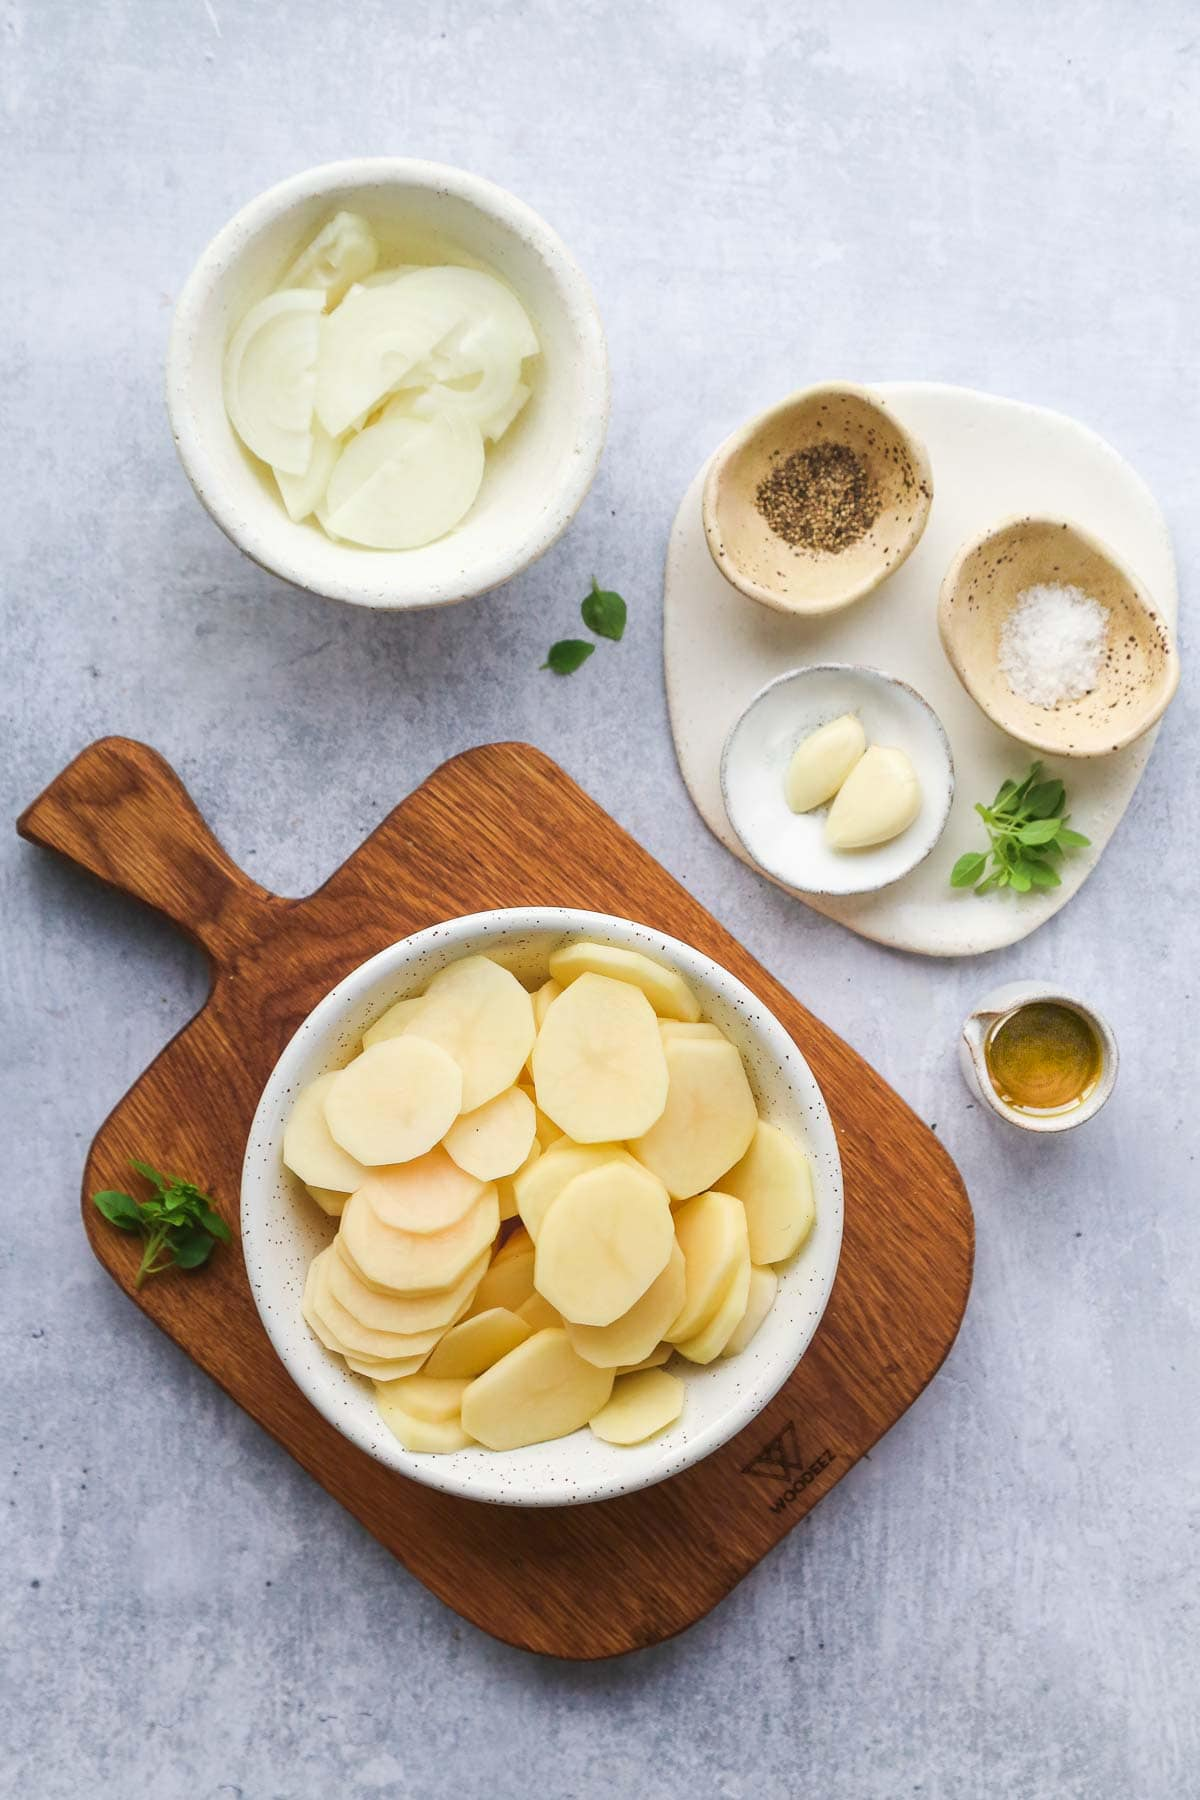 Smothered Potatoes ingredients